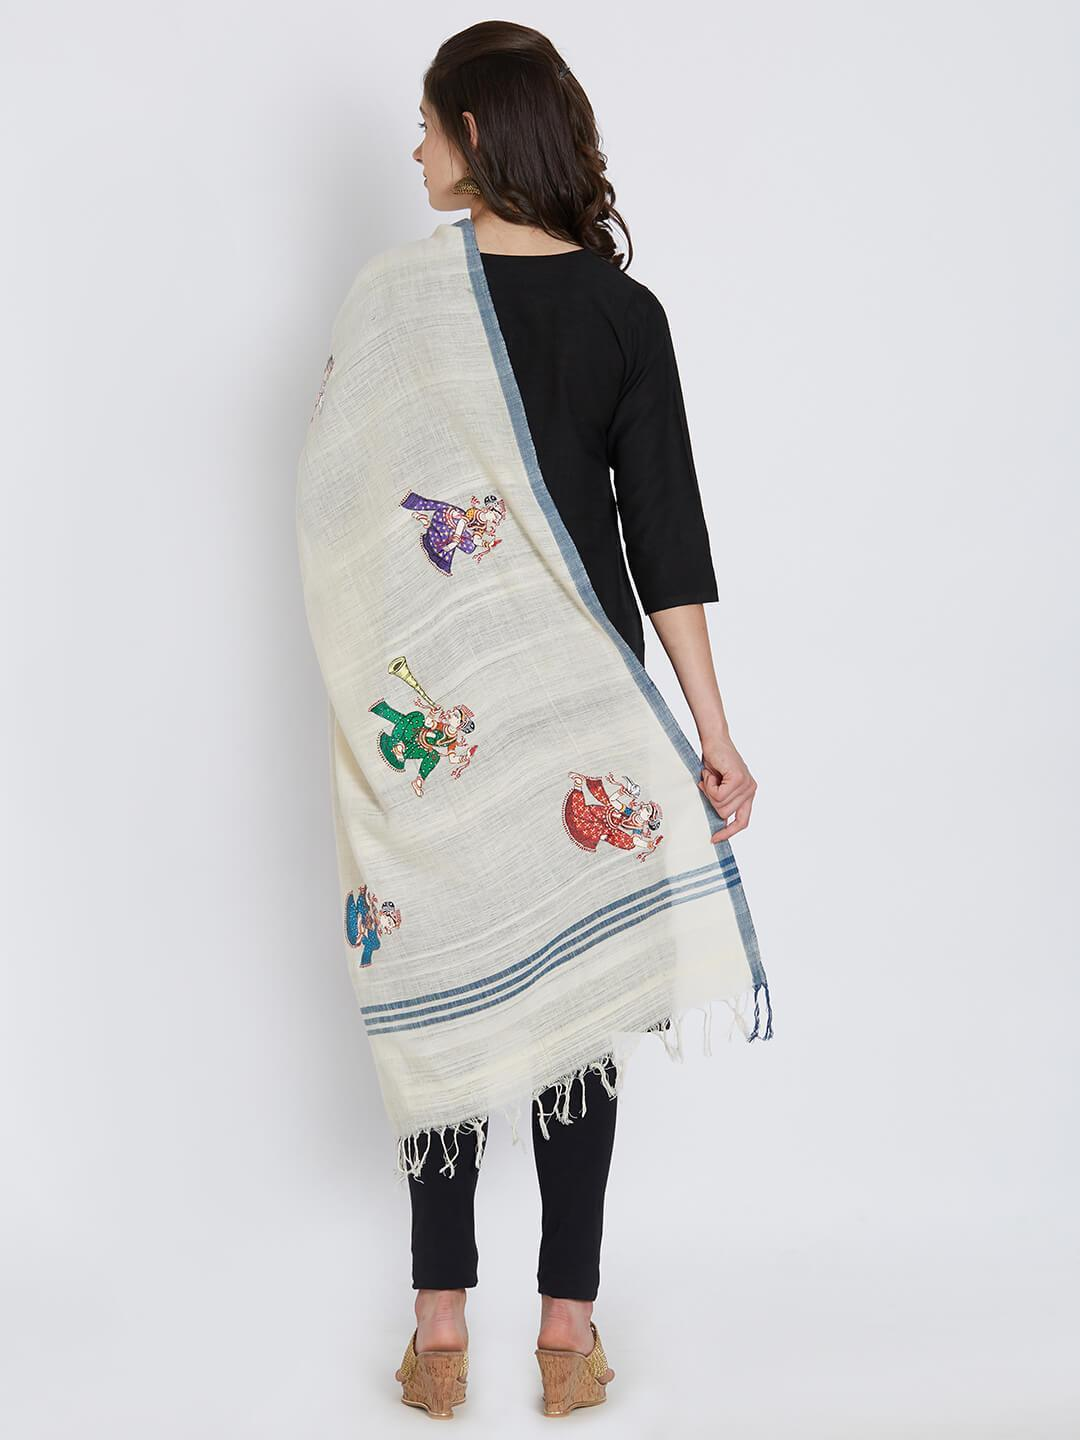 CraftsCollection.in - Offwhite Khadi Cotton Stole with Pattachitra motifs